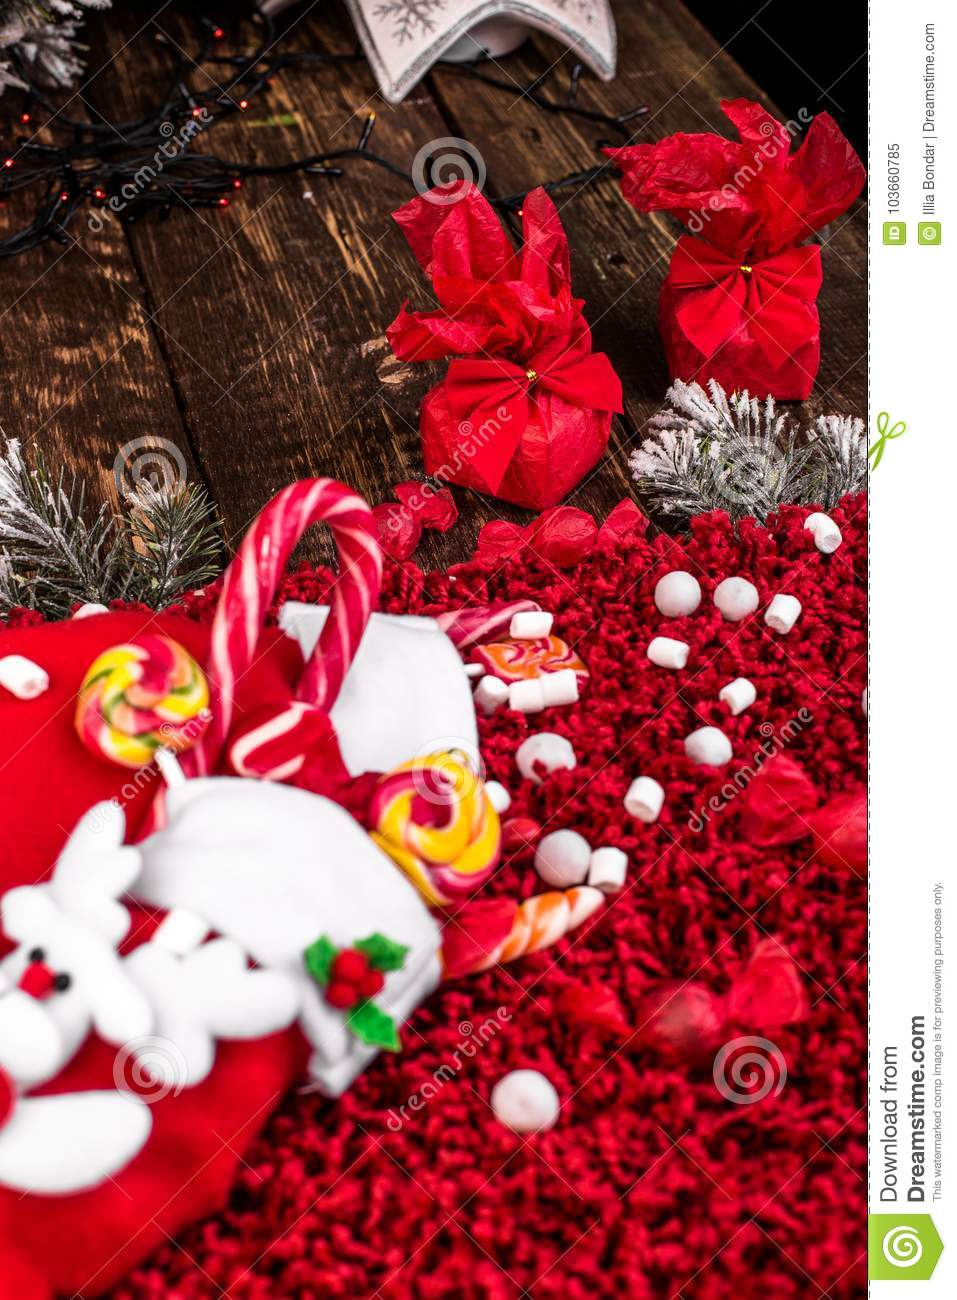 download christmas socks full of candy and sweets on red fleecy background flat lay